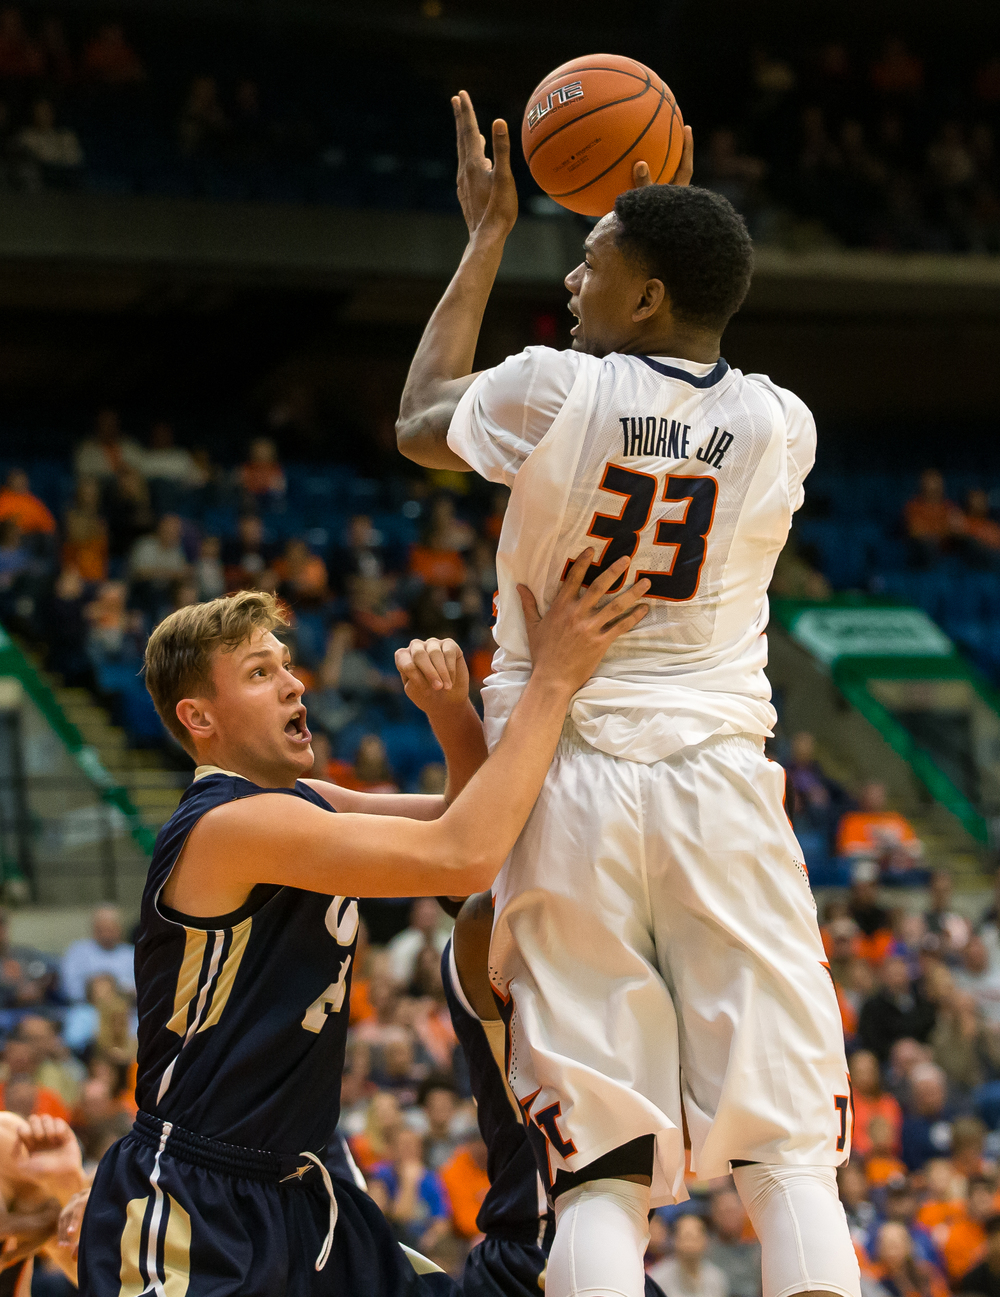 University of Illinois' Mike Thorne Jr. (33) draws the foul from University of Illinois Springfield's Zach Steinberg (21) as he goes up for a shot in the first half during an exhibition game at the Prairie Capital Convention Center, Sunday, Nov. 8, 2015, in Springfield, Ill. Justin L. Fowler/The State Journal-Register